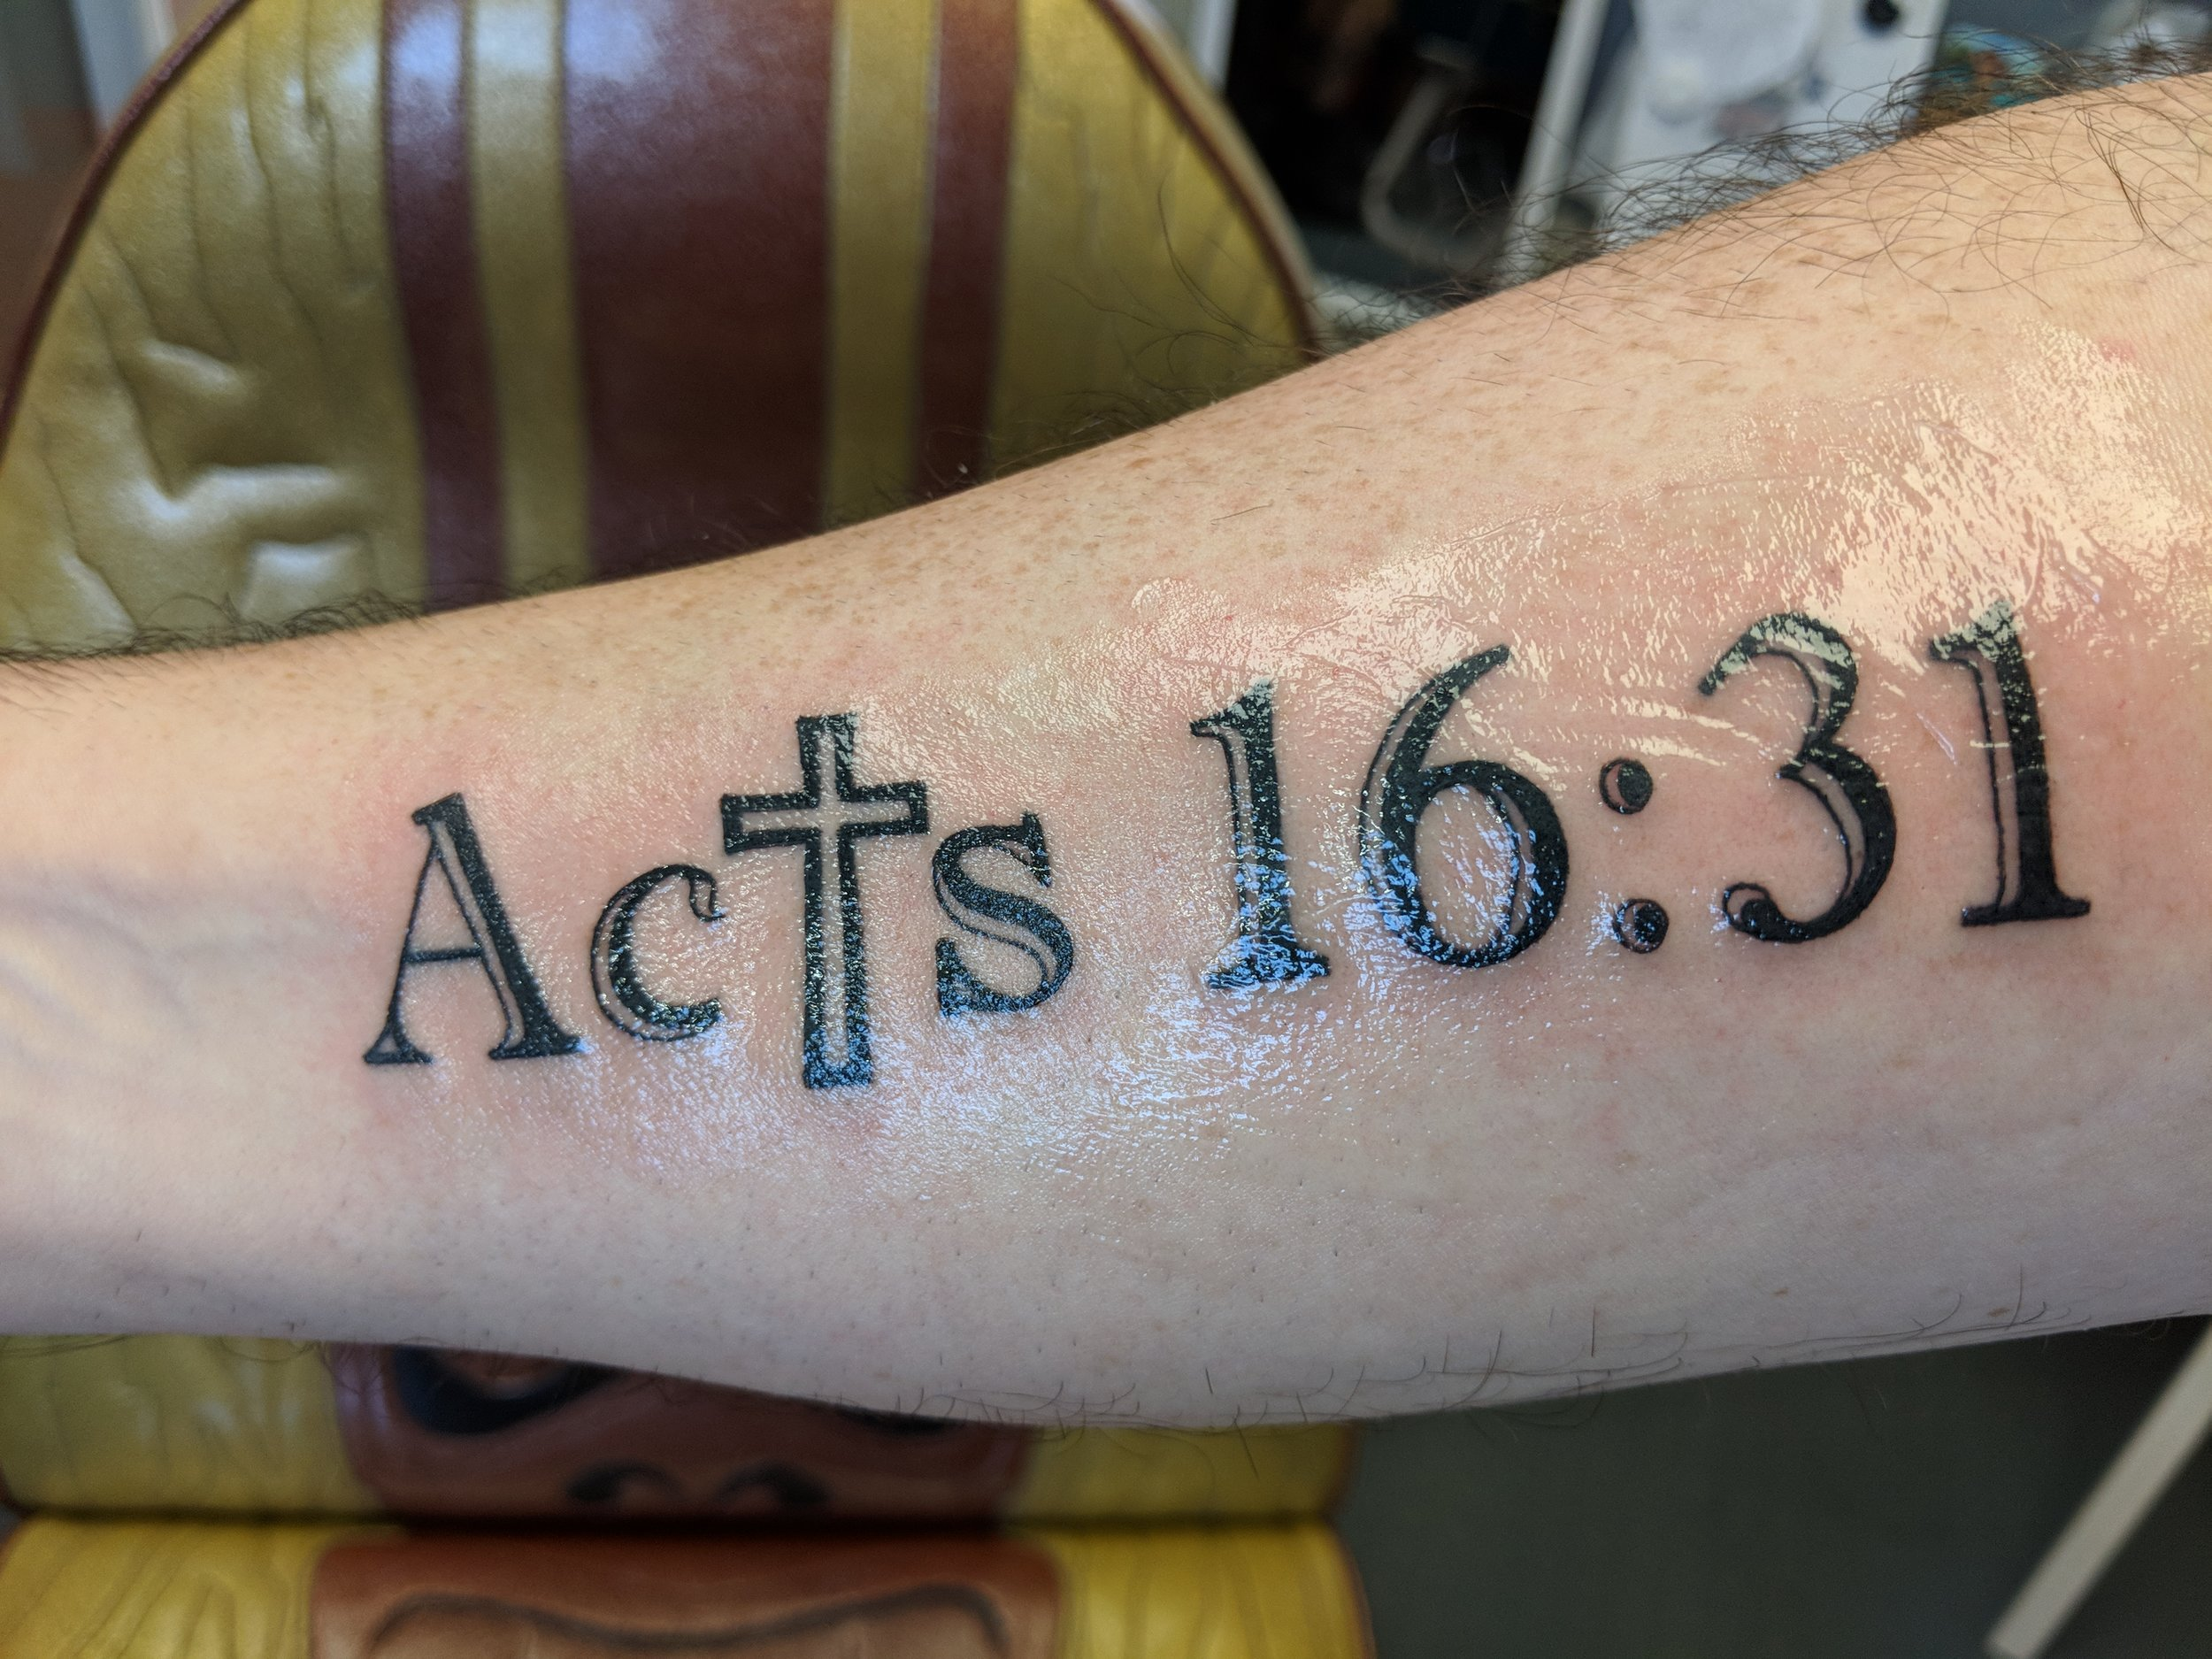 In this episode I begin the story of my new tattoo, what it means and how that passage impacted my relationship with God. -